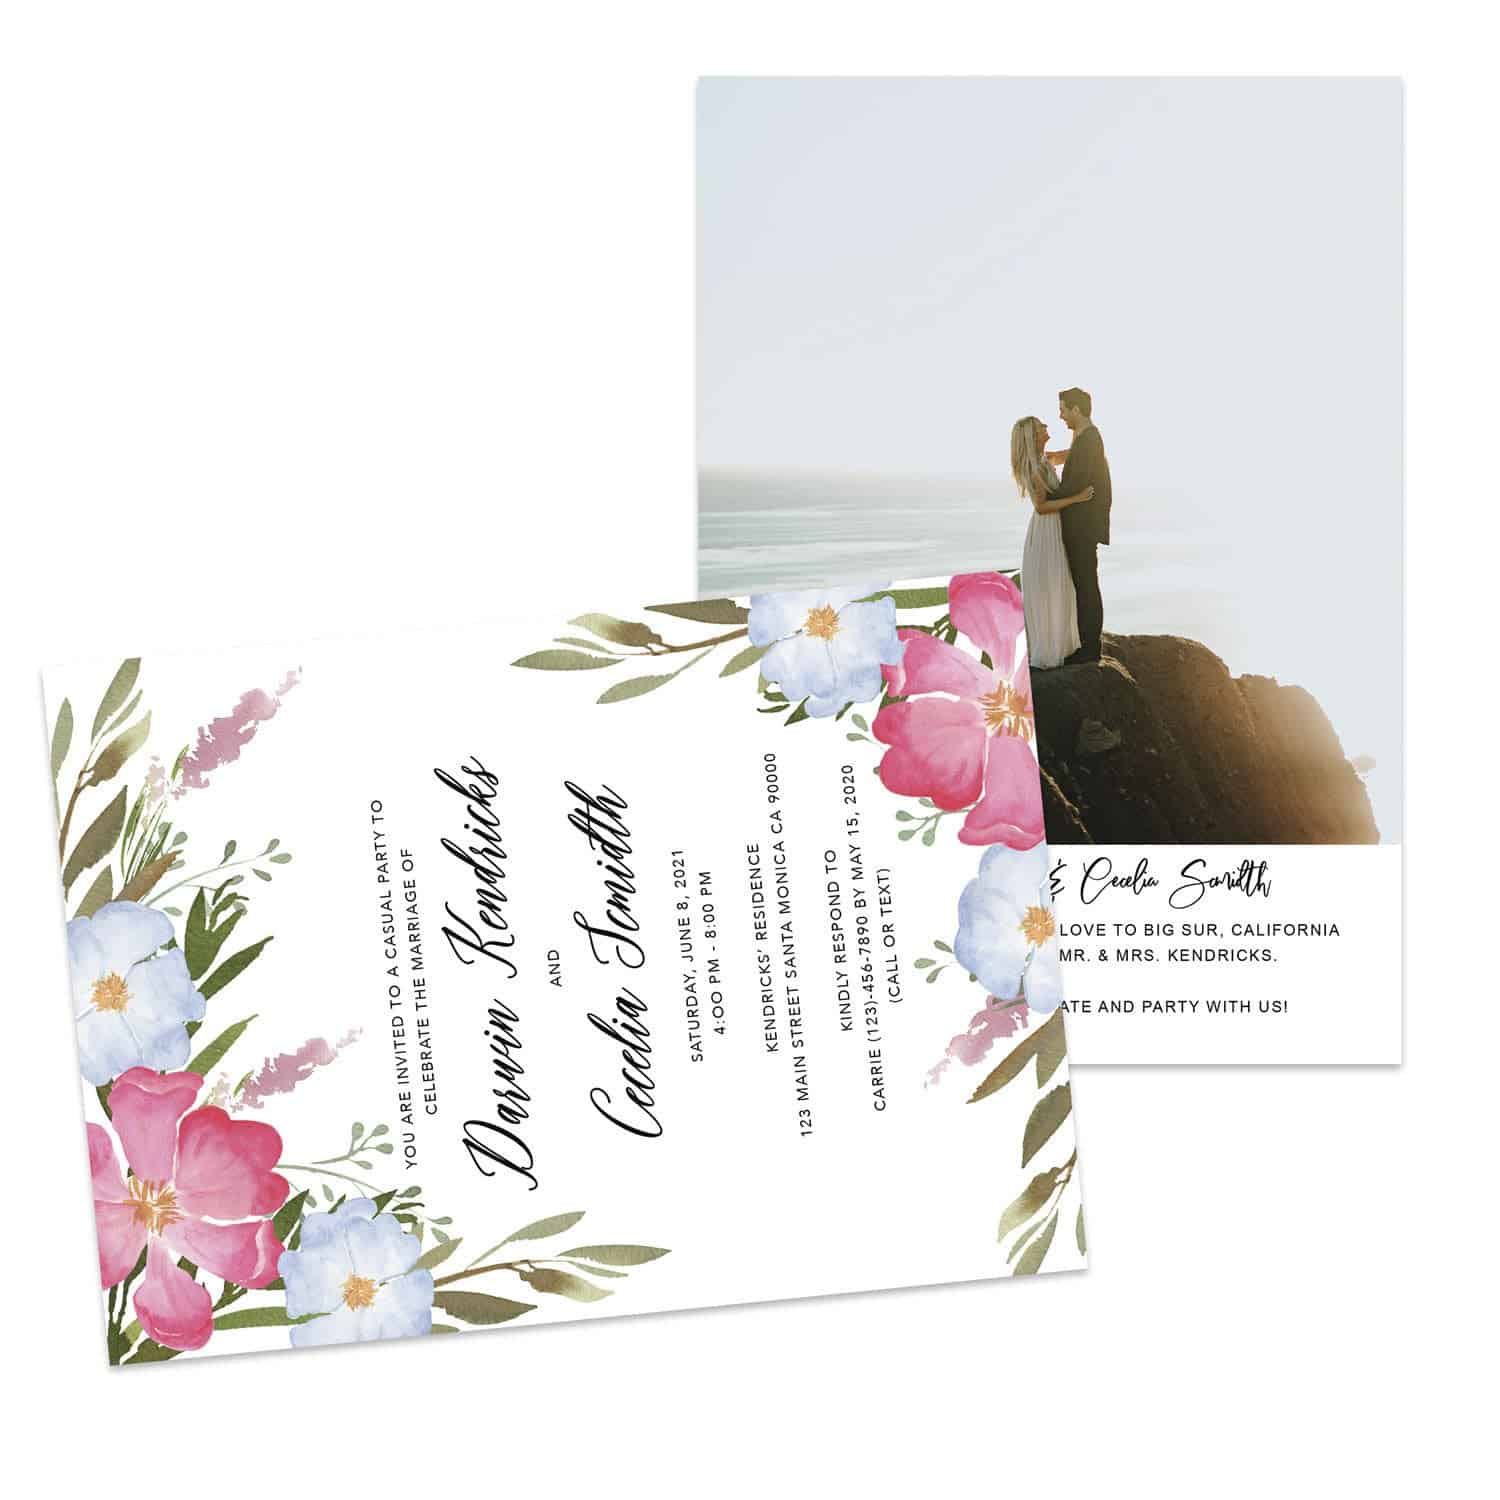 Floral Wedding Elopement Announcement And Party Reception Invitation Cards, Just Married Announcement Cards #429